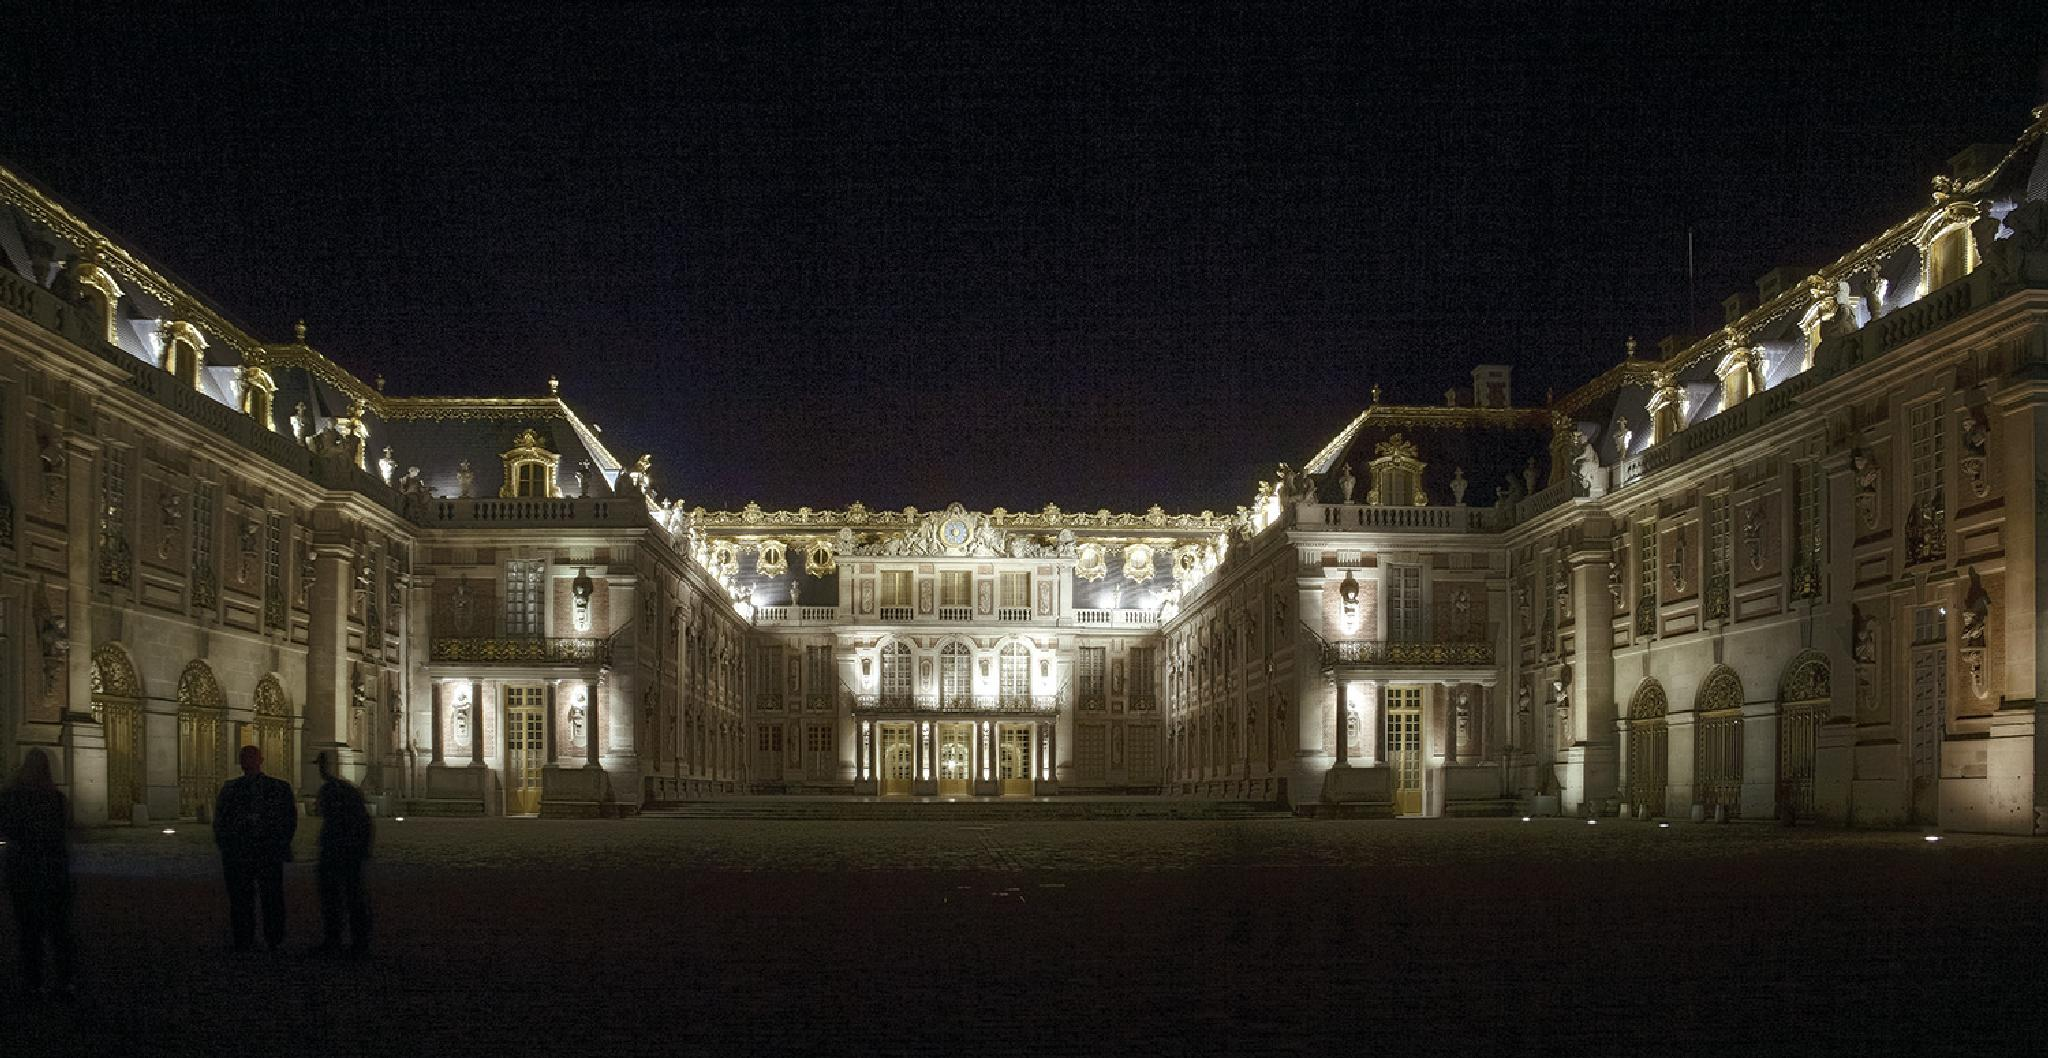 Versailles at Night by harald.seiwert